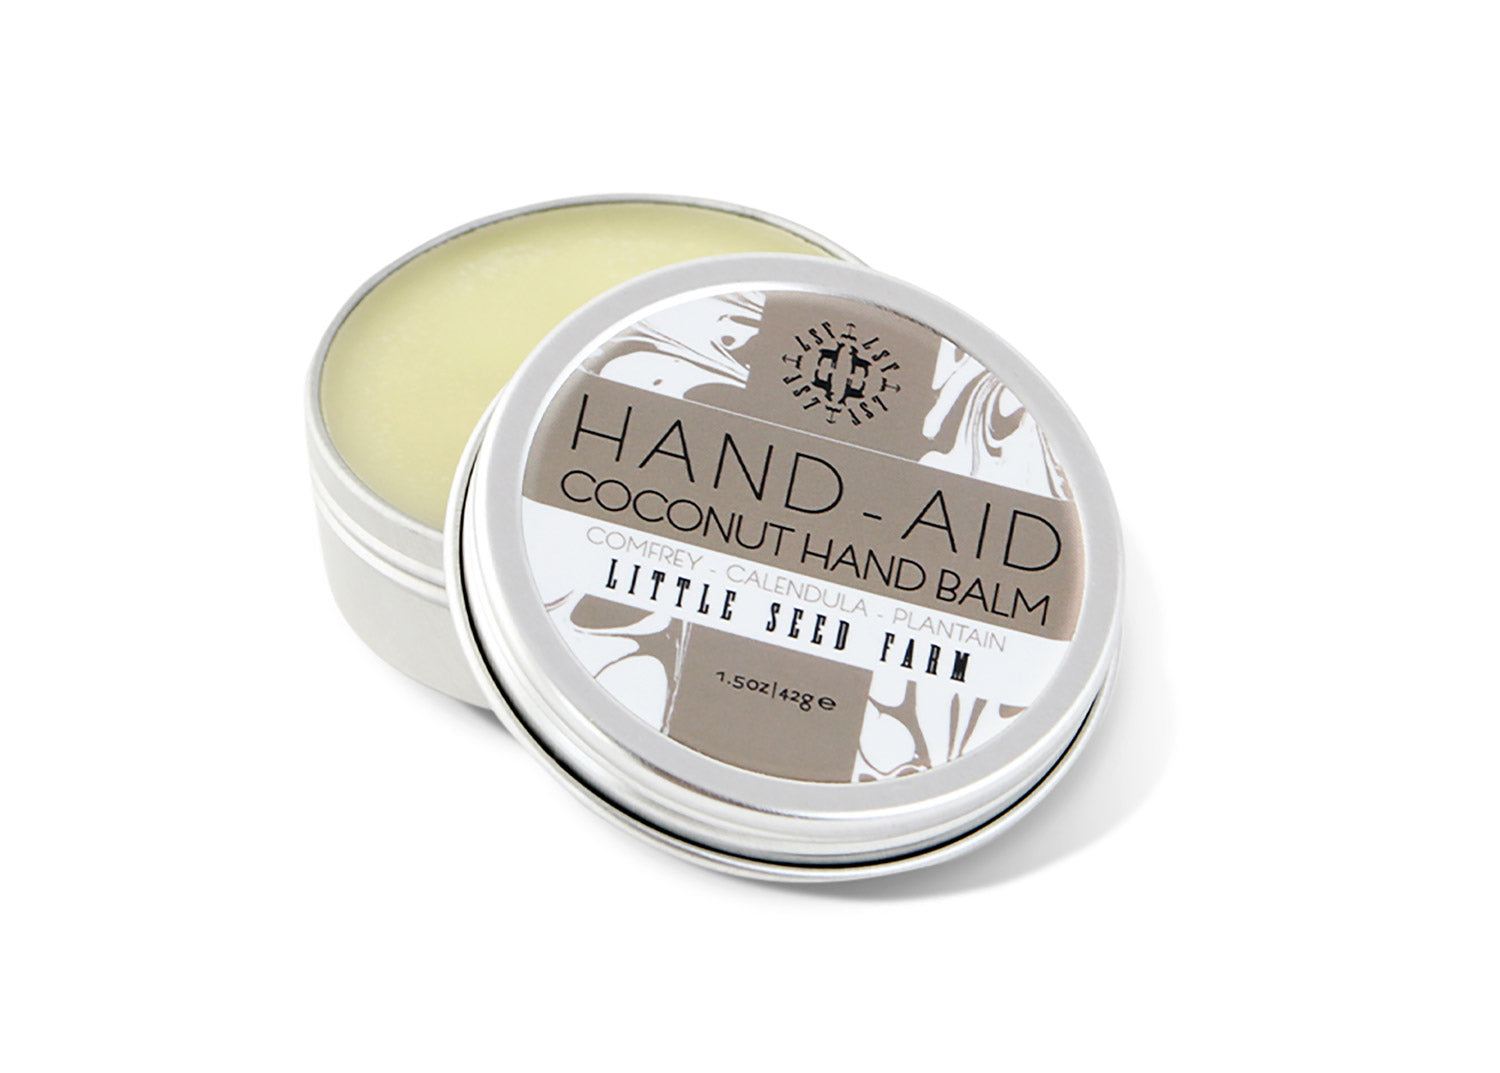 Coconut Hand Balm made with organic ingredients and natural coconut extract